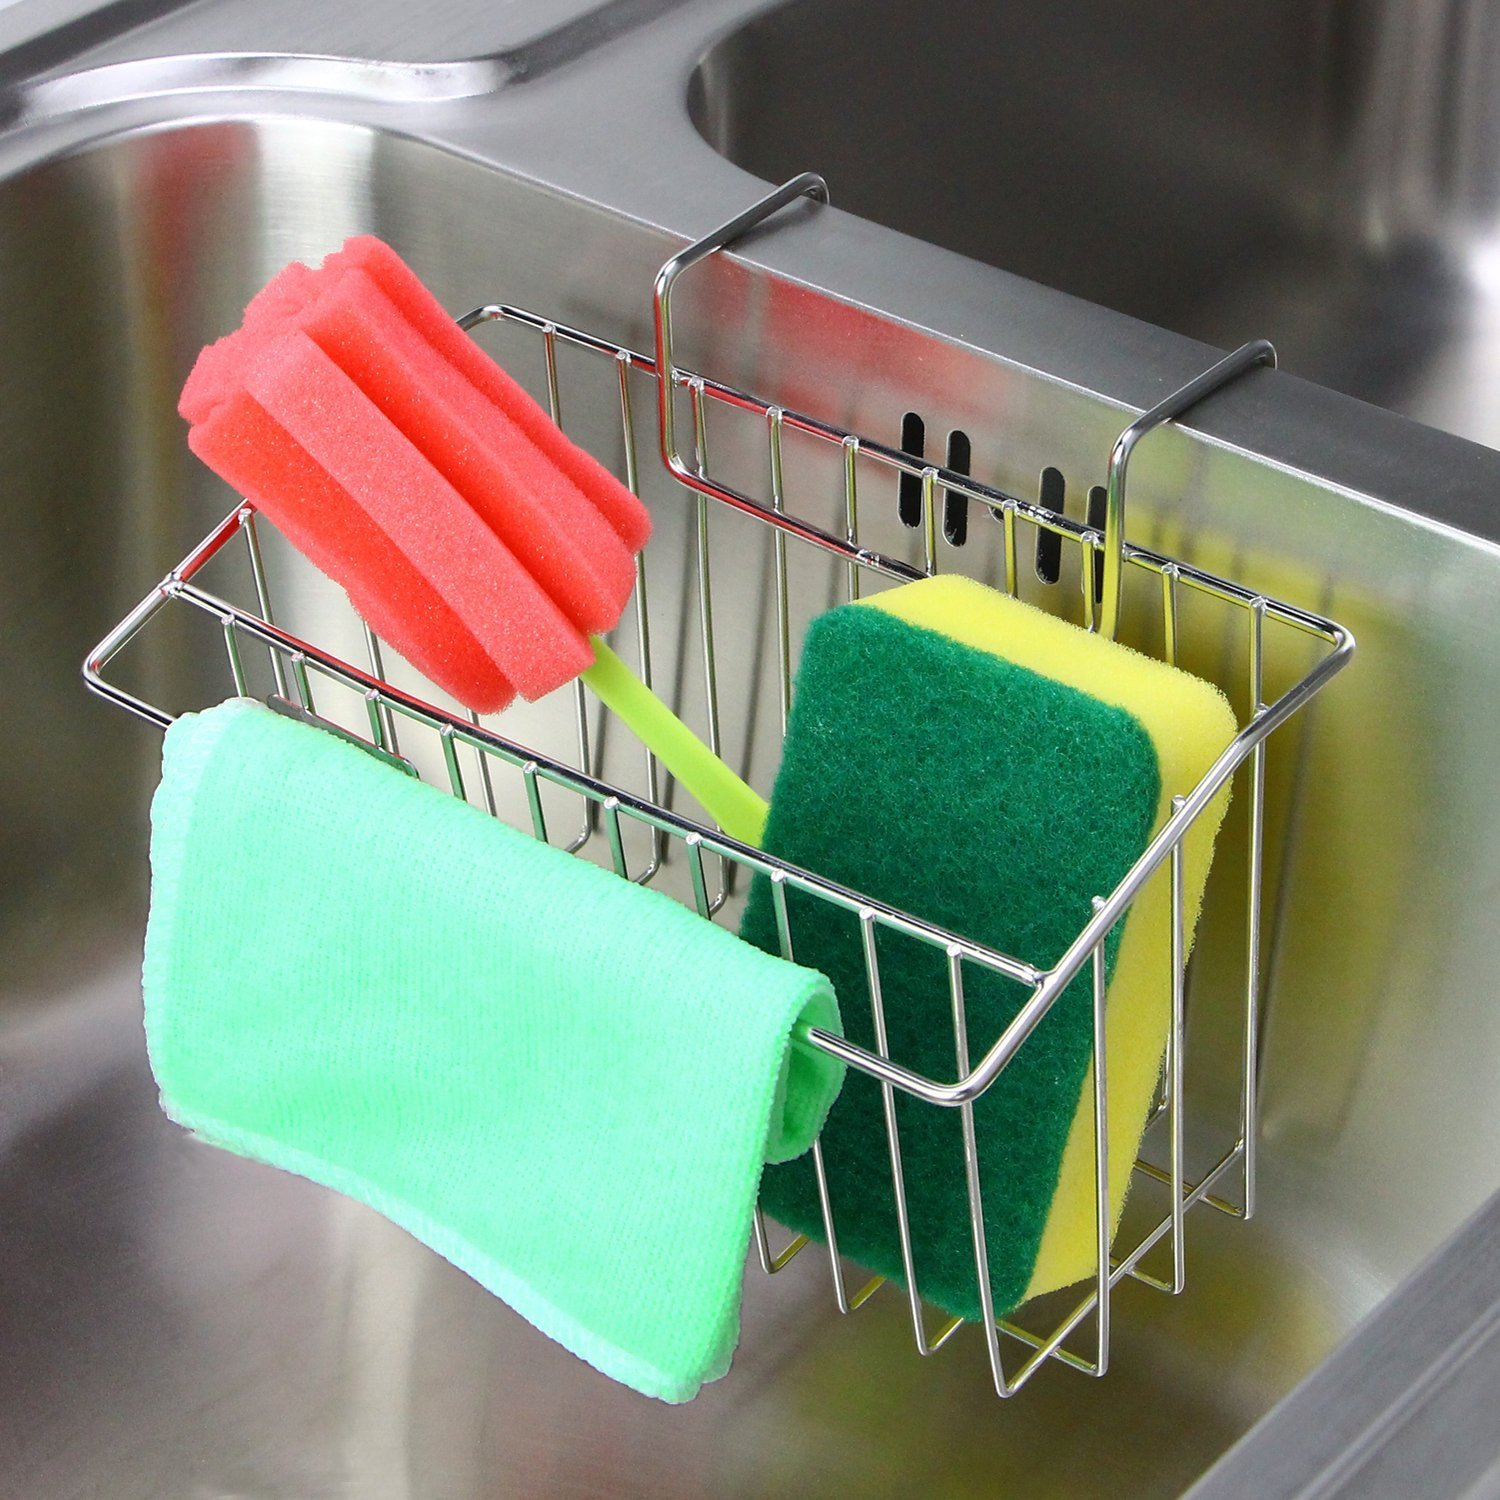 AHYUAN Kitchen Sink Caddy Stainless Steel Brush Sponge Soap Dishwashing Liquid Sink Drainer Holder Kitchen Tool (Sink Caddy B) by Ahyuan (Image #3)